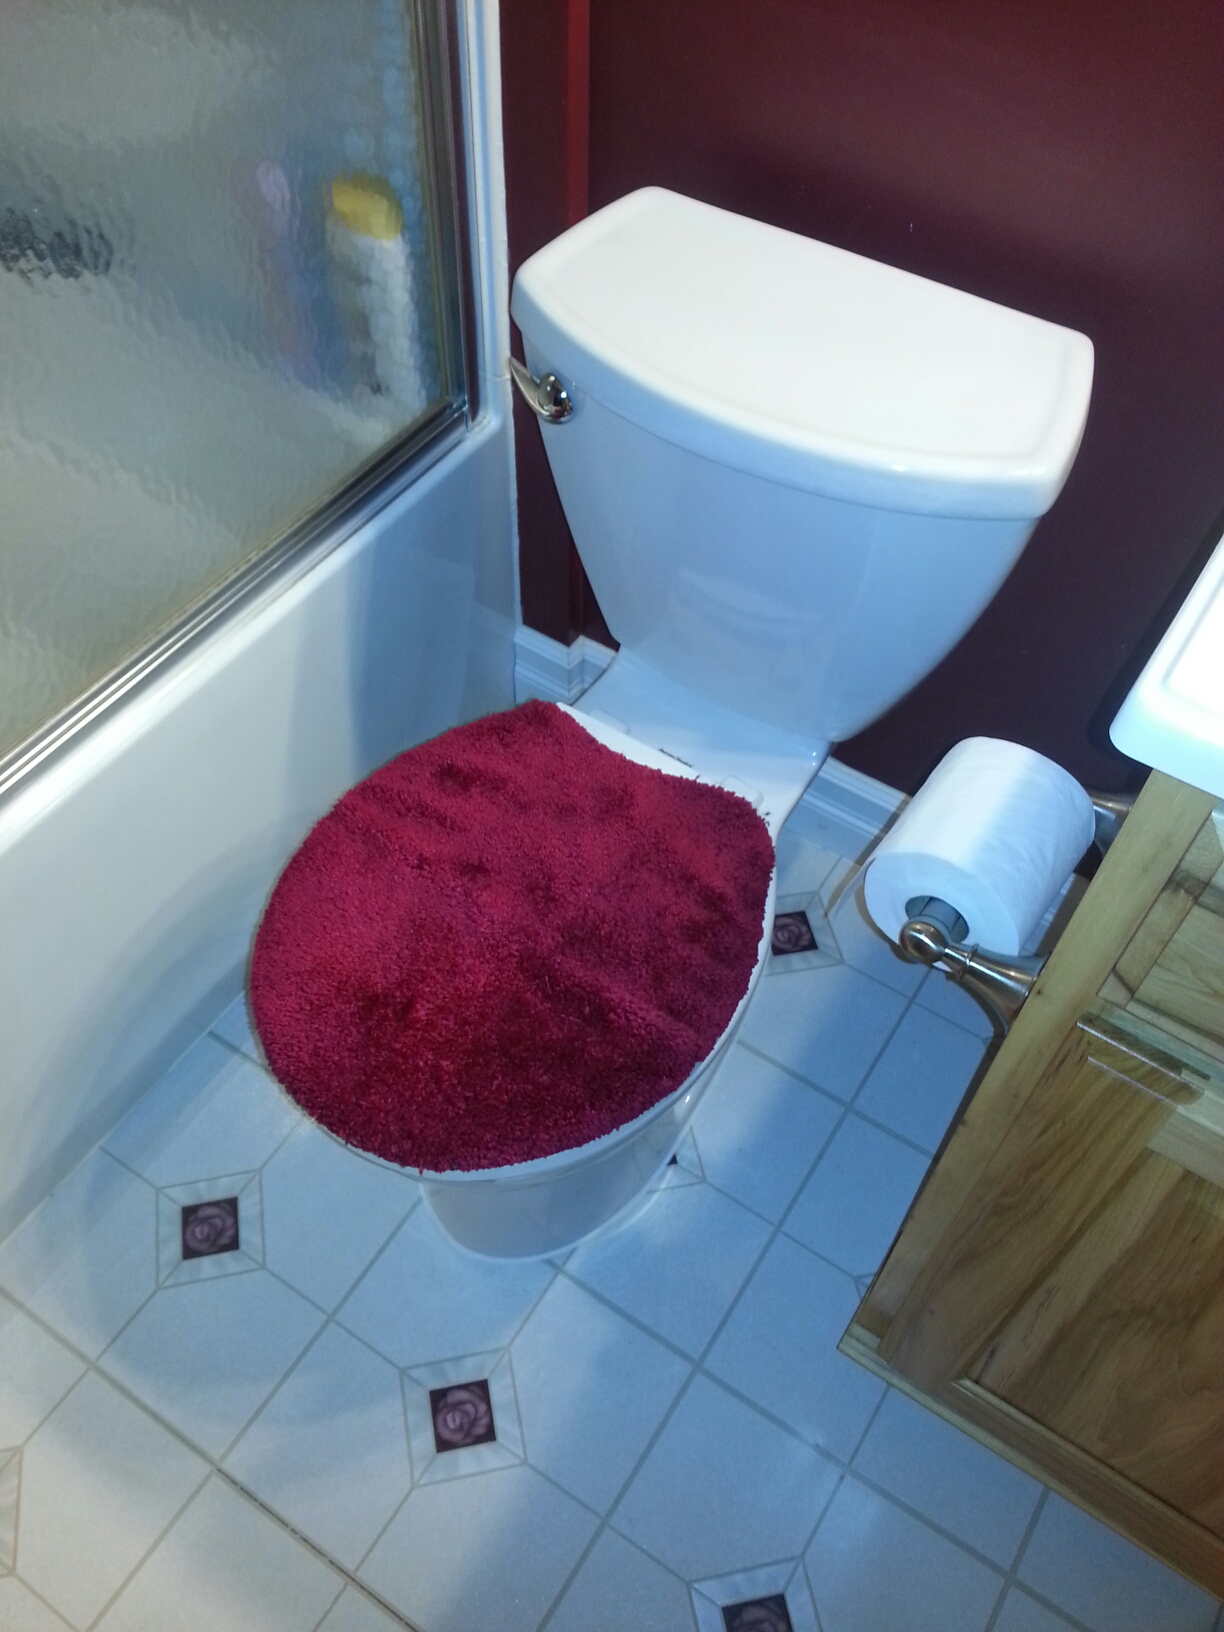 Charter Township of Clinton, MI - Toilet leaking, wax seal, plumbing, leaking